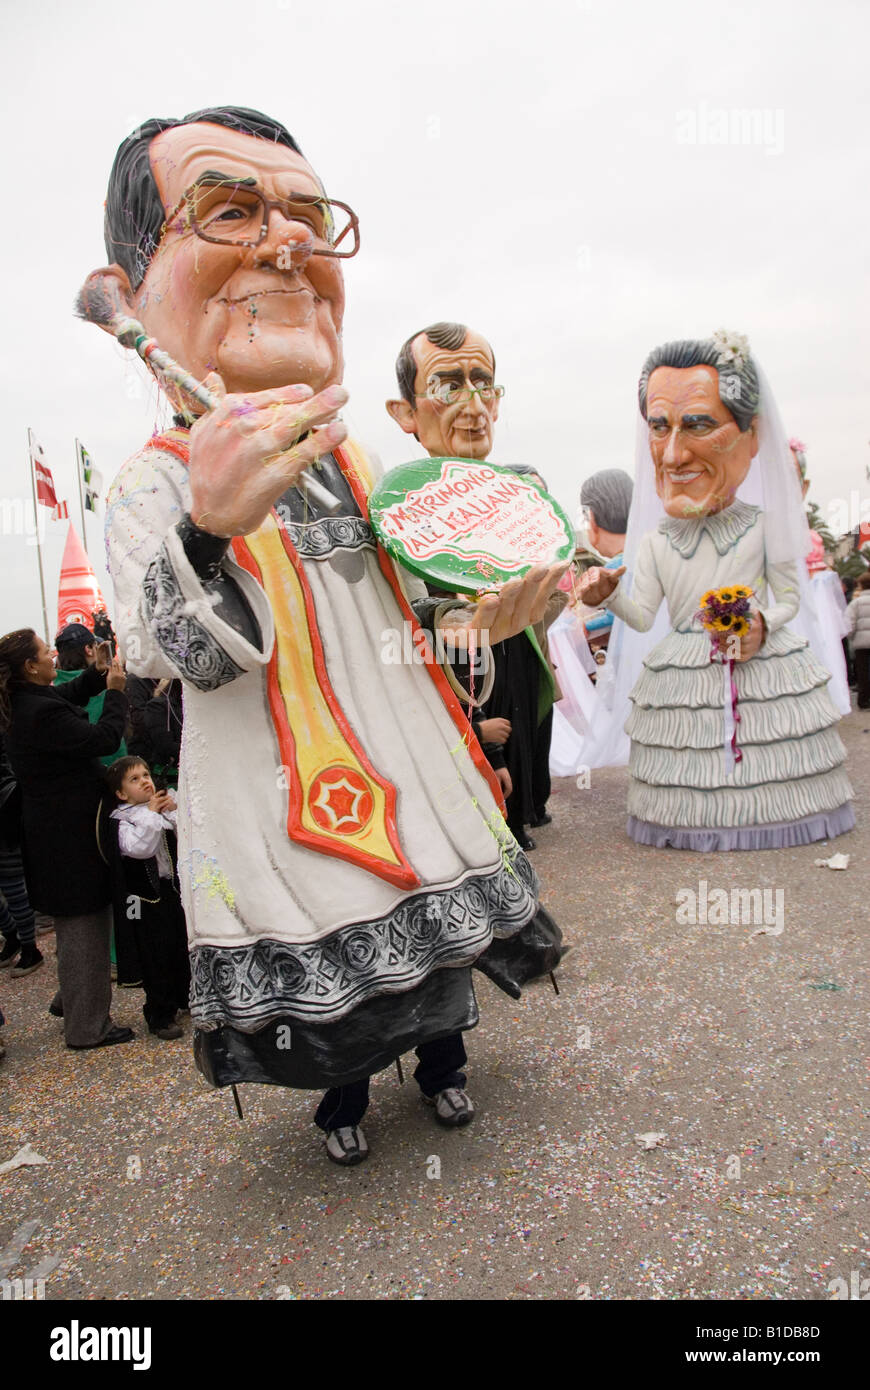 Giant heads political caricatures at Viareggio Carnivale, Tuscany, Italy - Stock Image